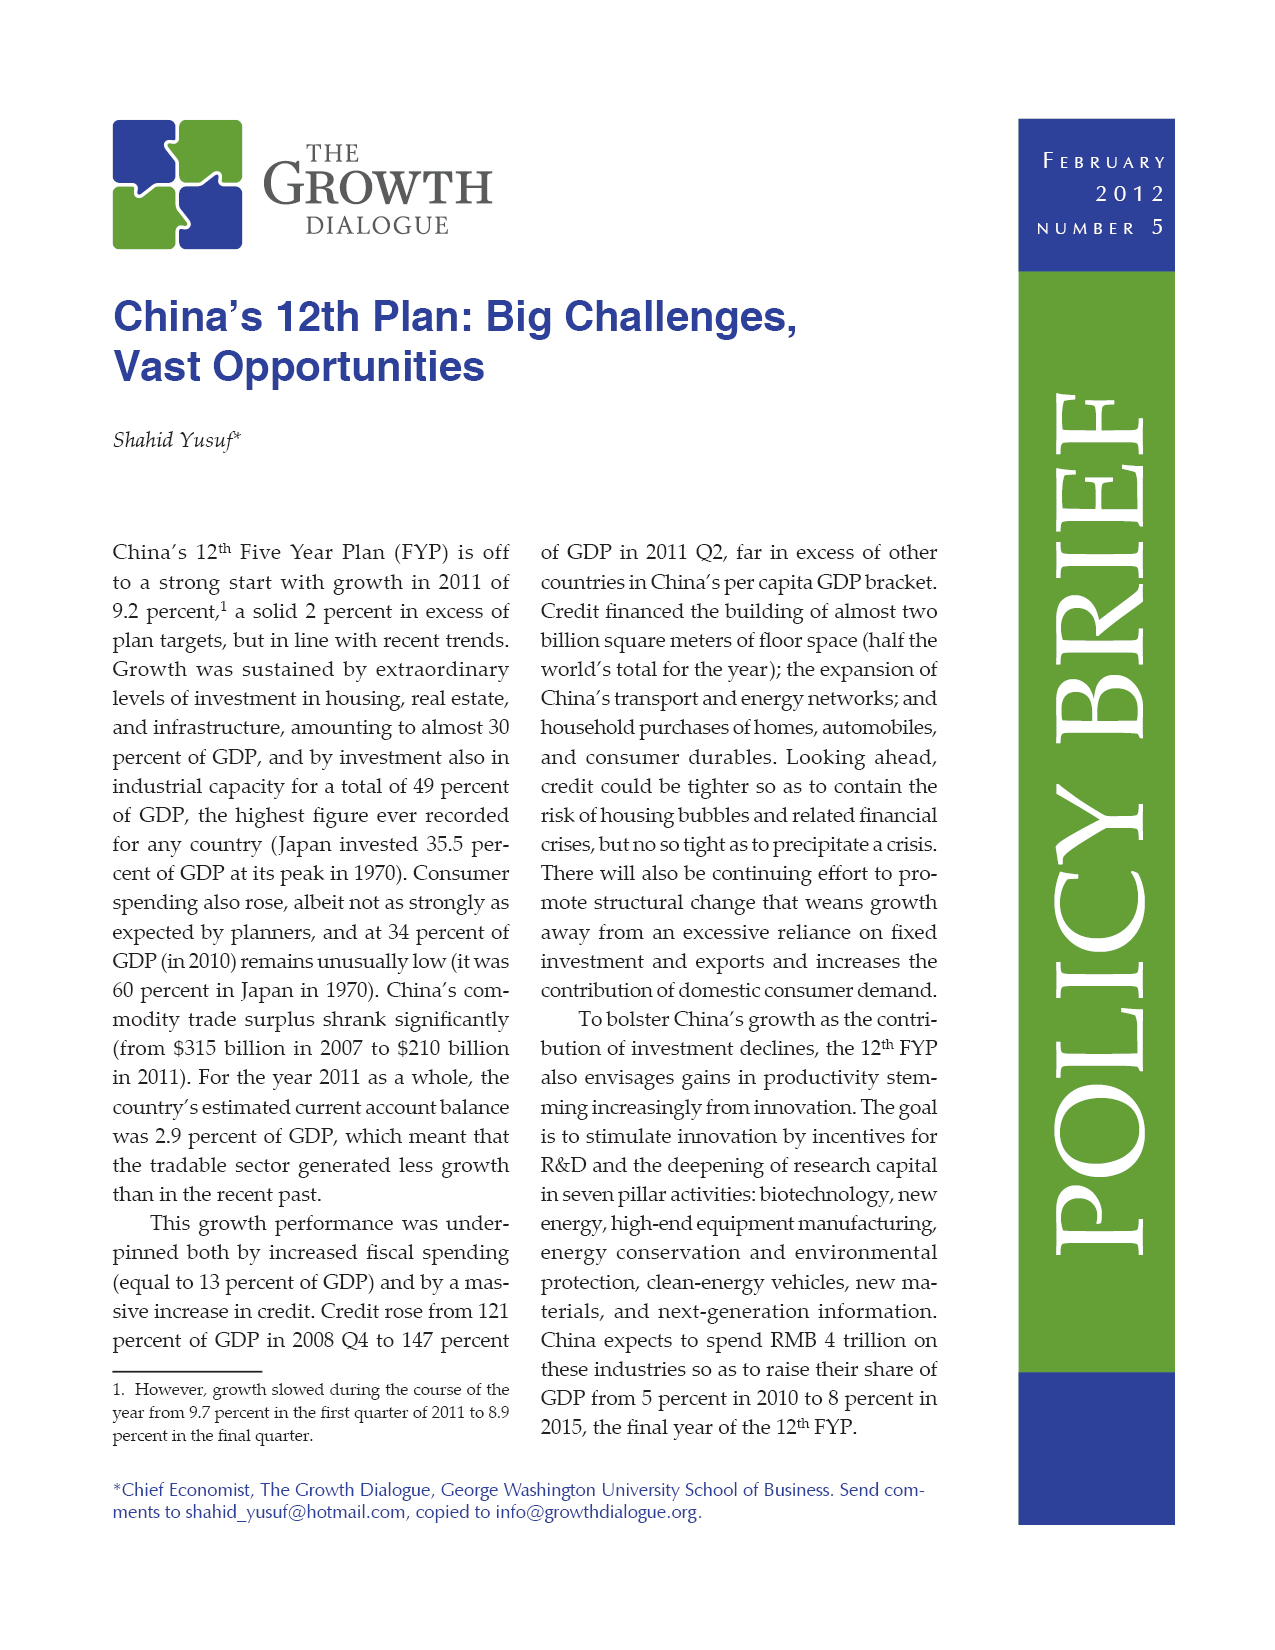 China's 12th Plan:  Big Challenges, Vast Opportunities